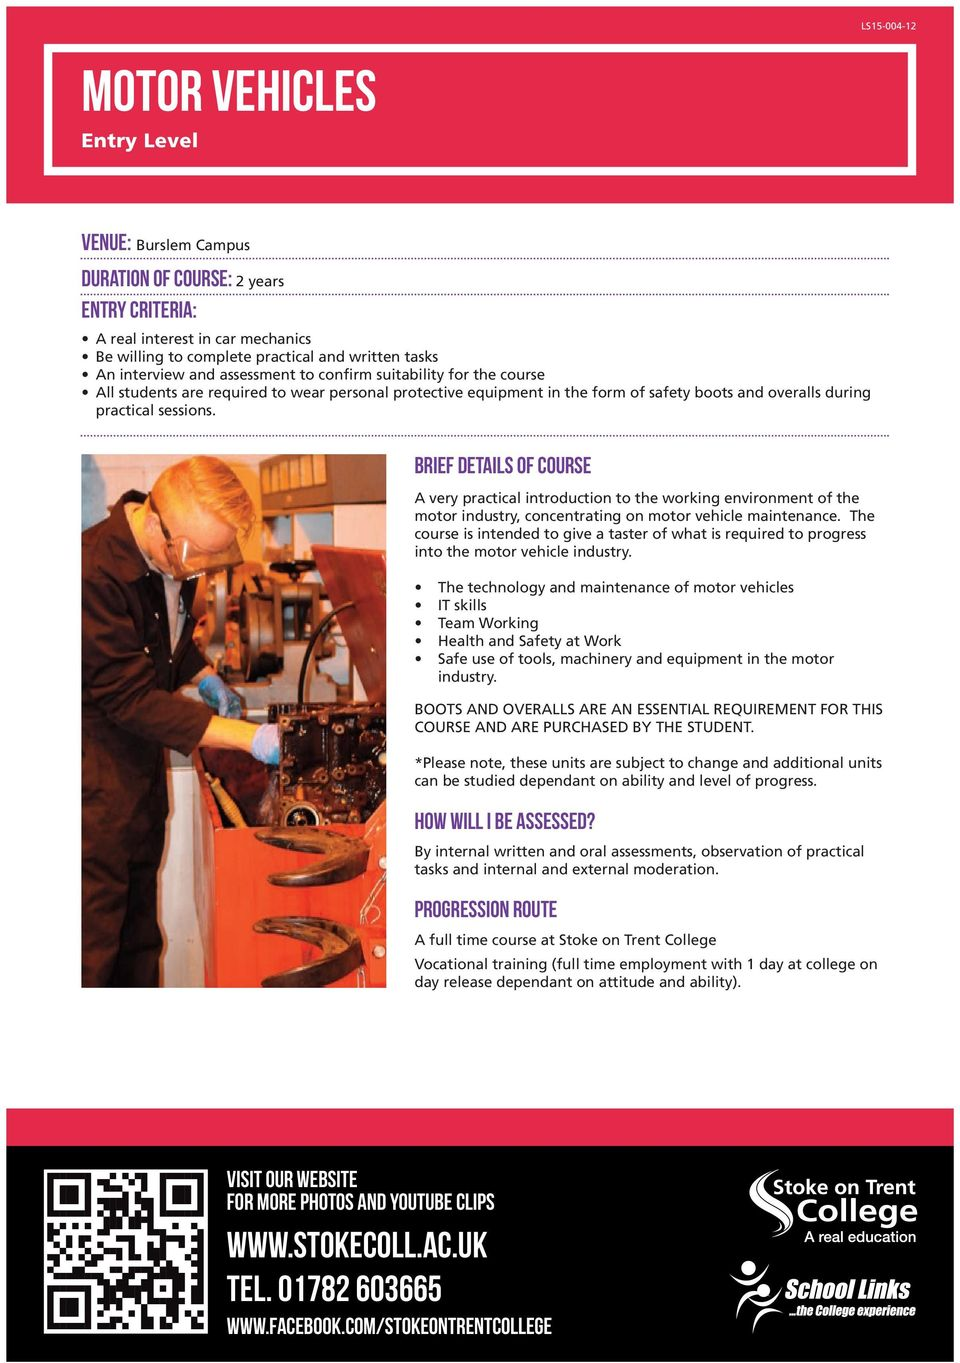 Brief Details of Course A very practical introduction to the working environment of the motor industry, concentrating on motor vehicle maintenance.